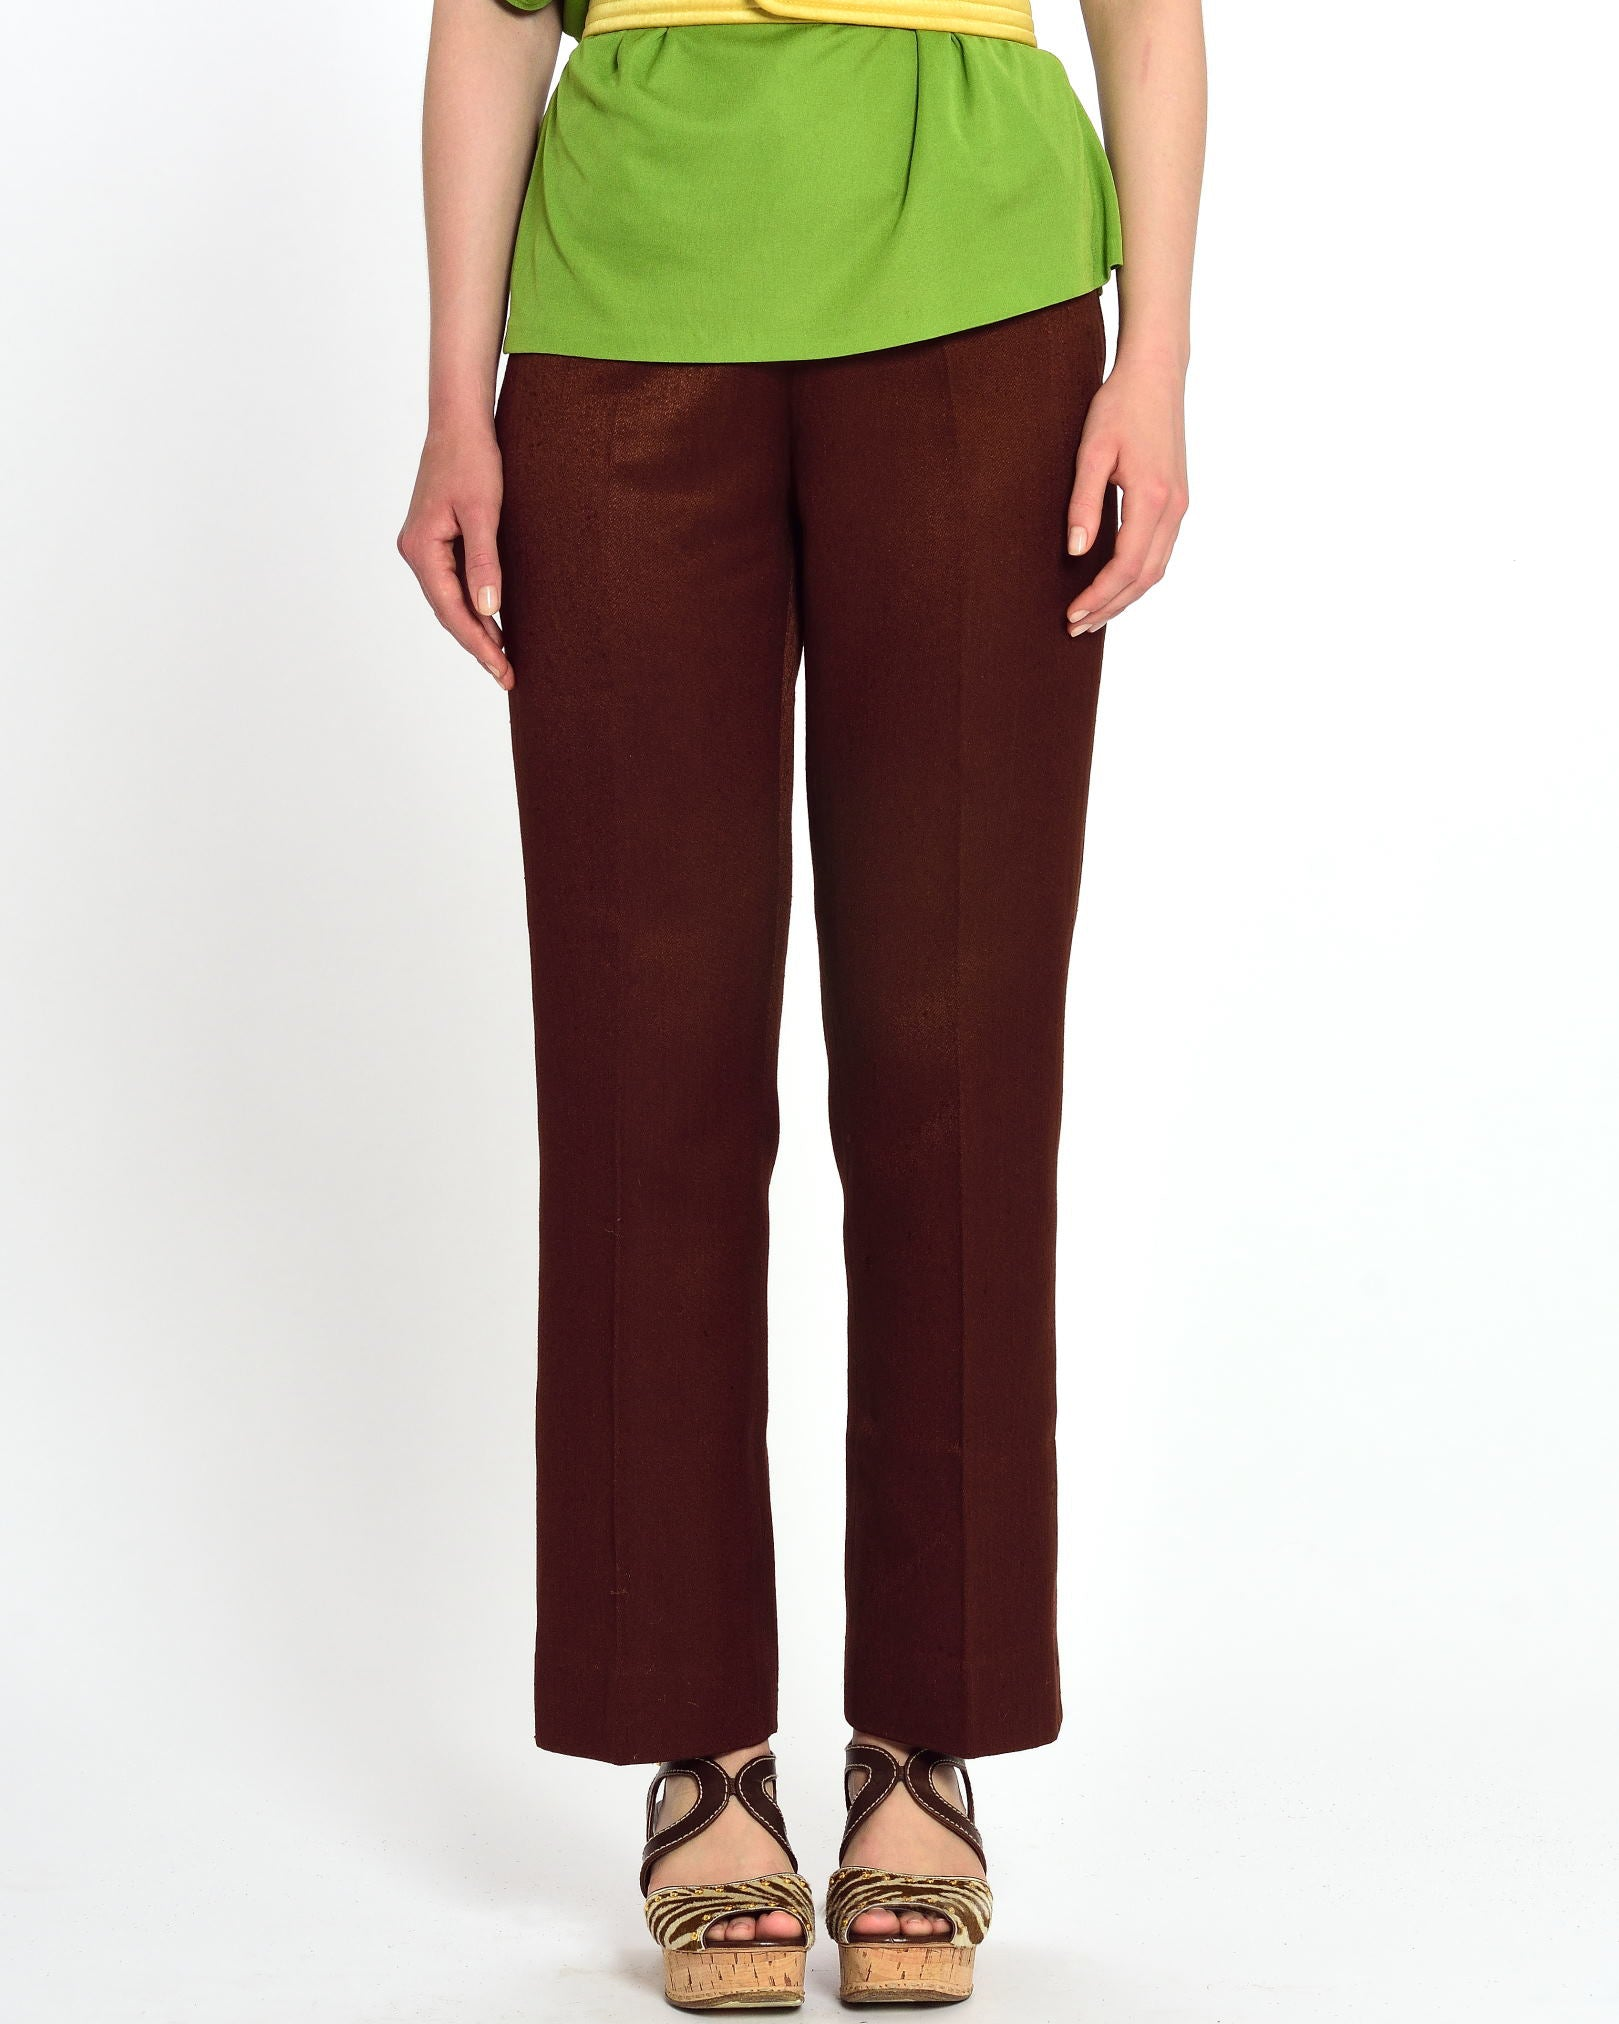 GIO CARÈ Brown Flared Pants